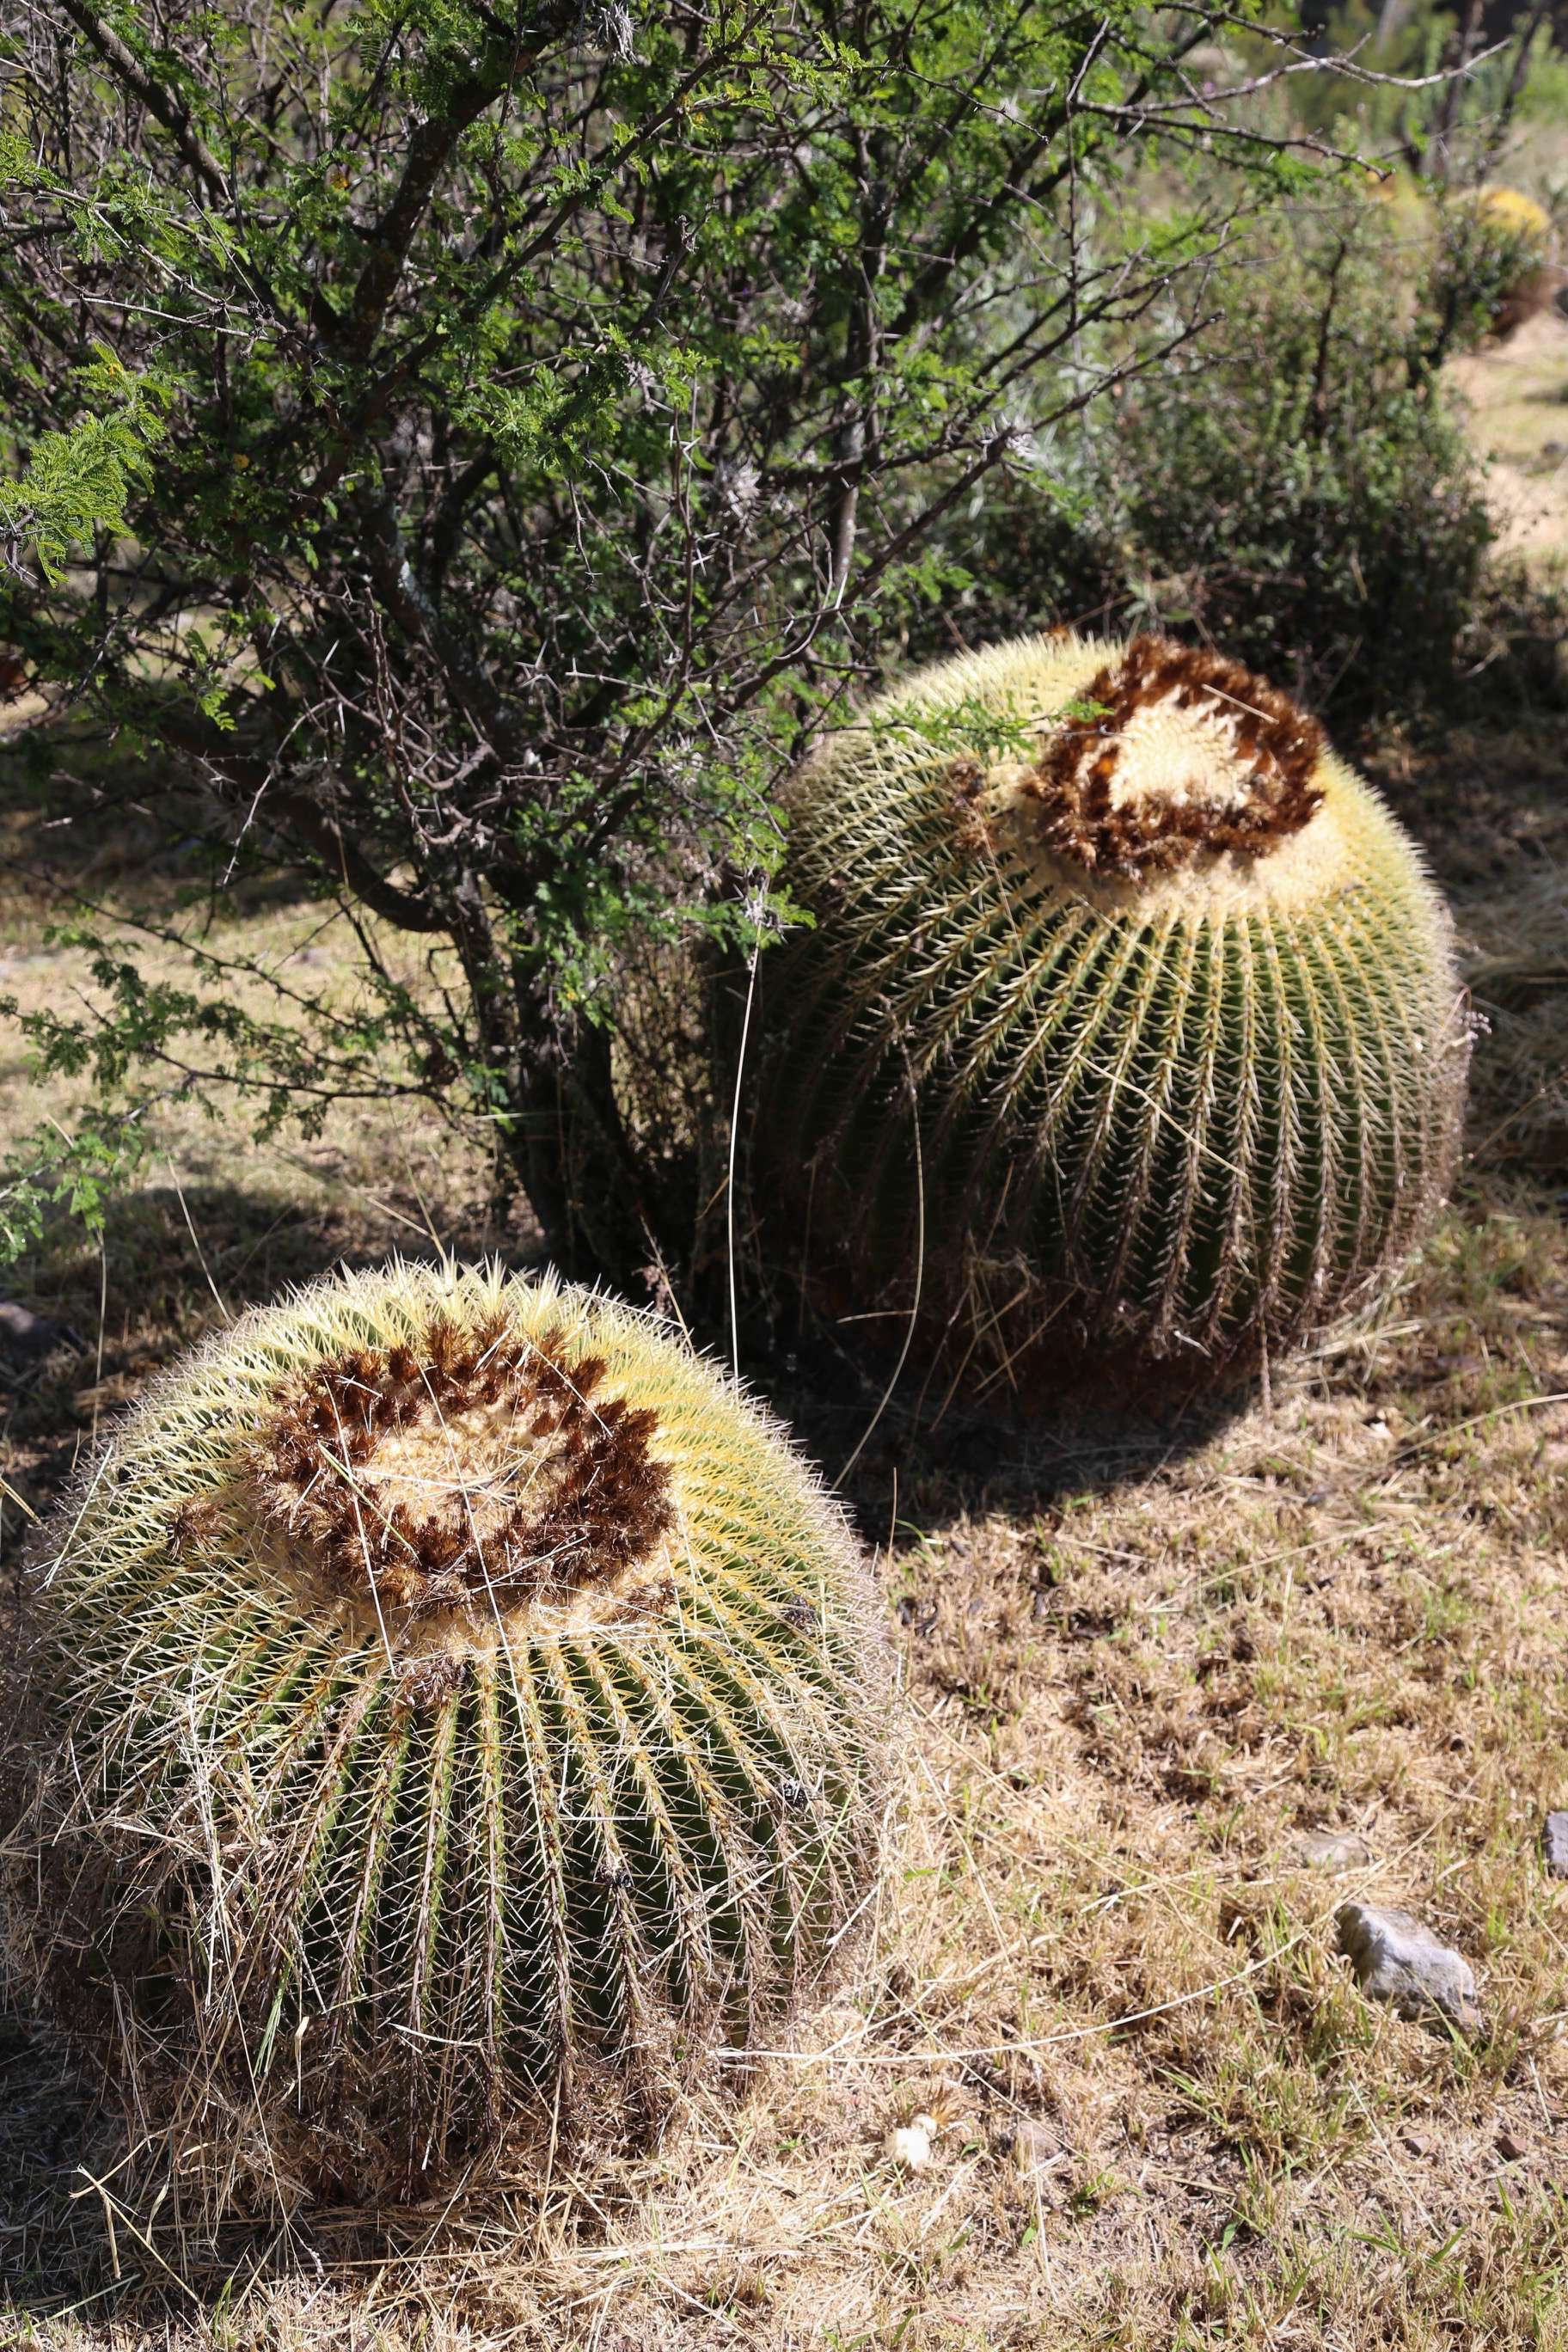 Barrel cactus like these have been brought to the garden, saved from land development.